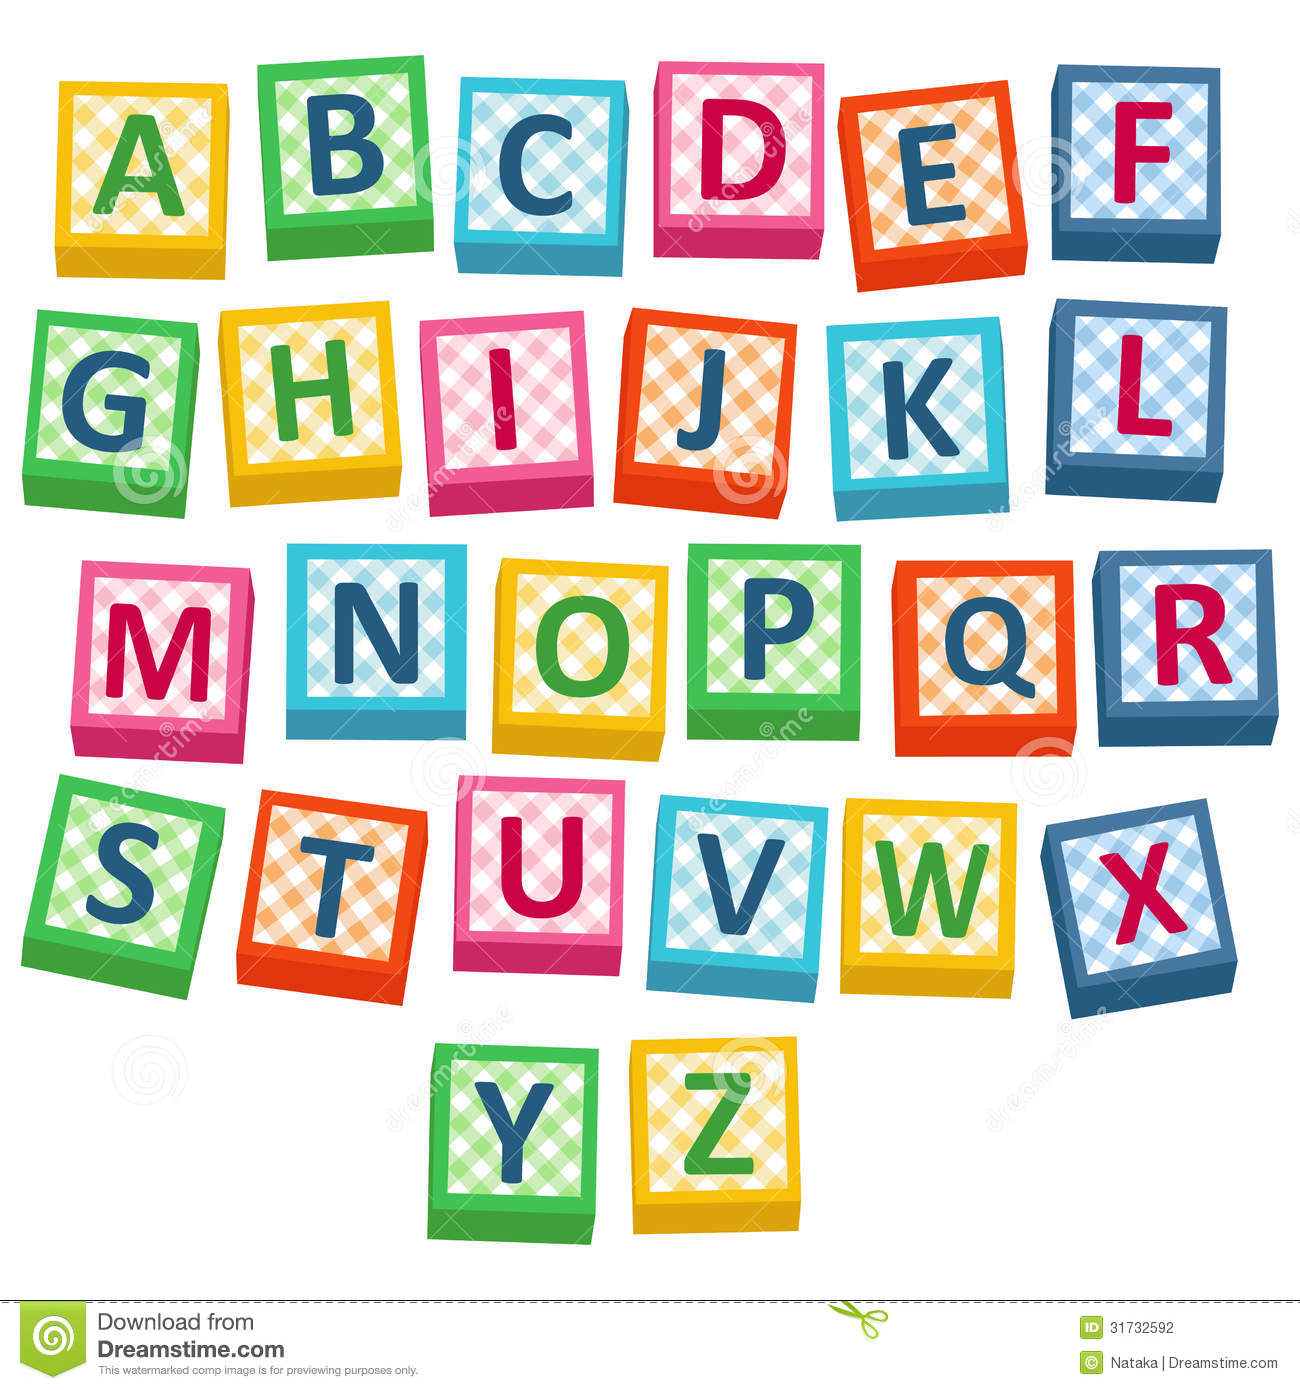 Alphabet block clipart image library download Block Letters Clipart - Clipart Kid image library download